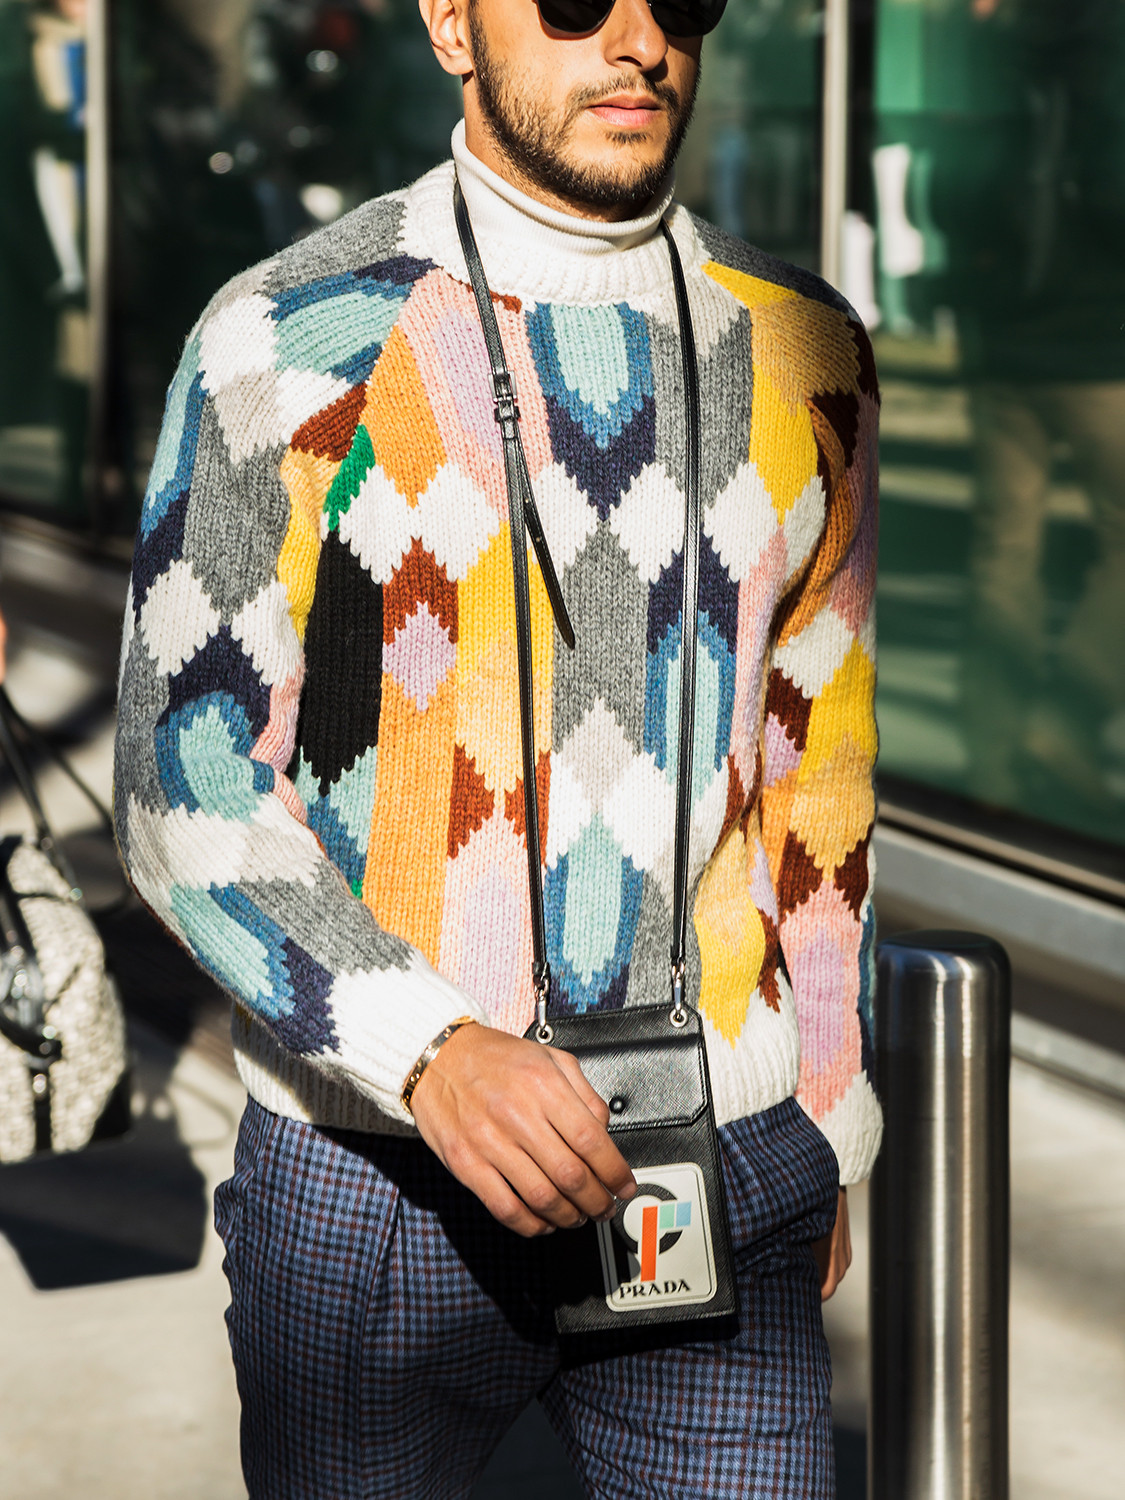 Men's outfit idea for 2021 with multicoloured patterned jumper, navy patterned formal trousers, white trainers. Suitable for spring, autumn and winter.